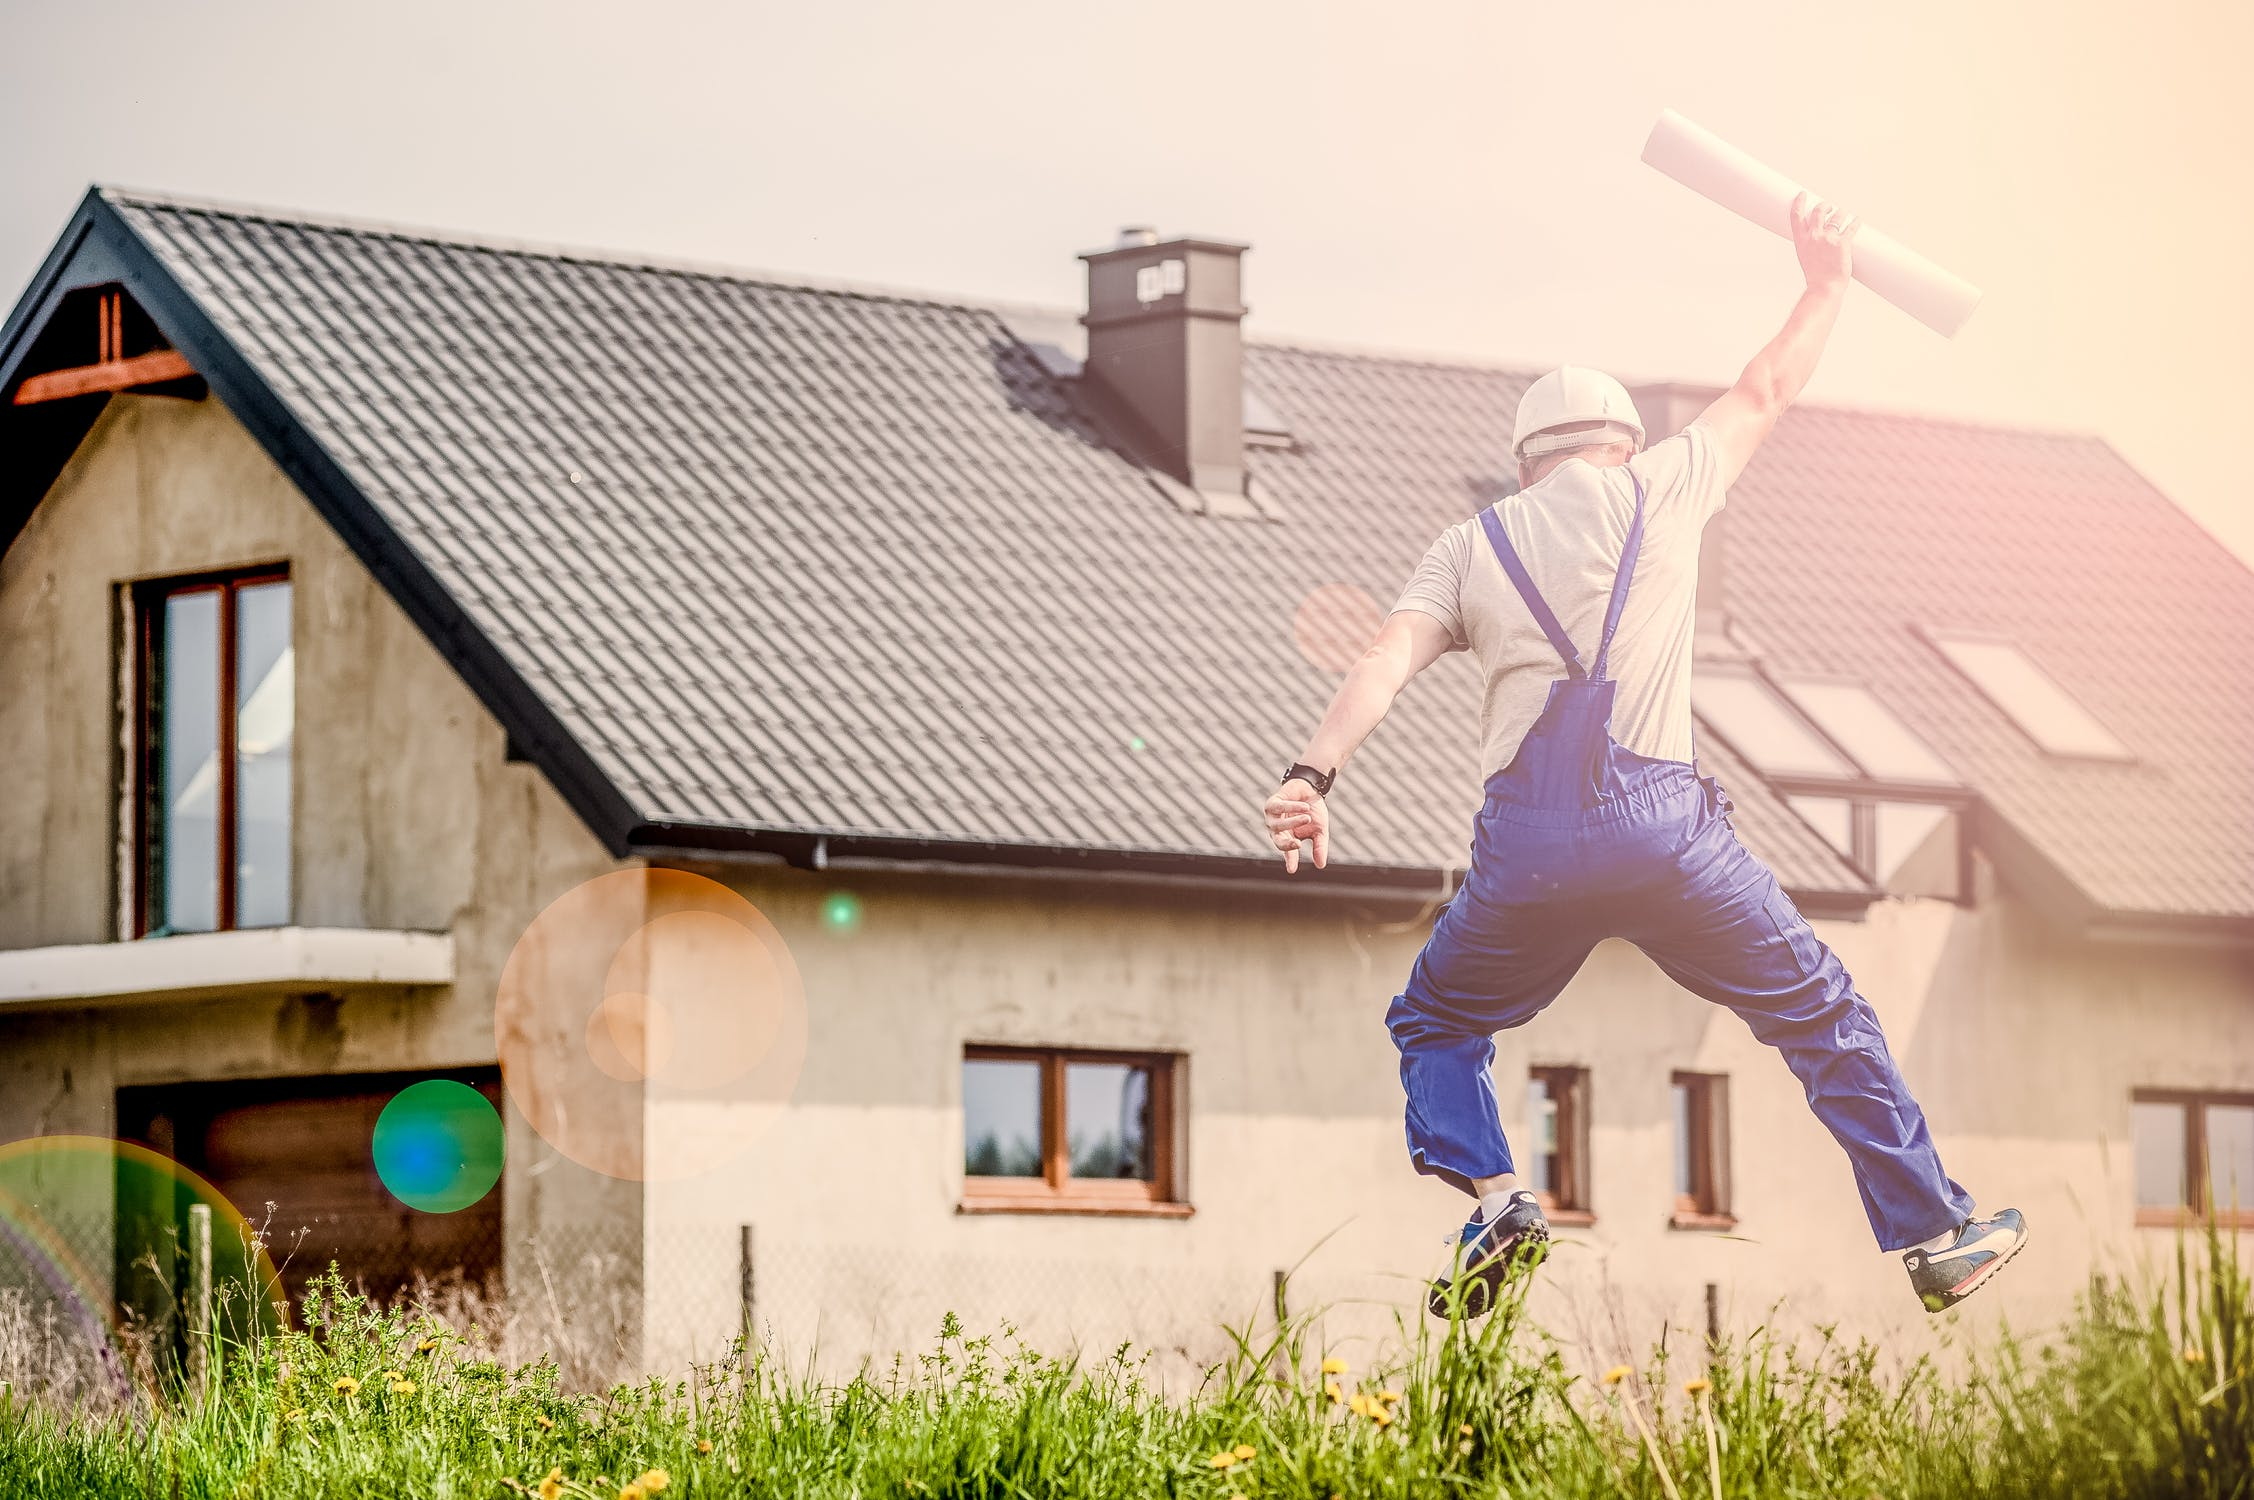 Man celebrating as he builds his new home